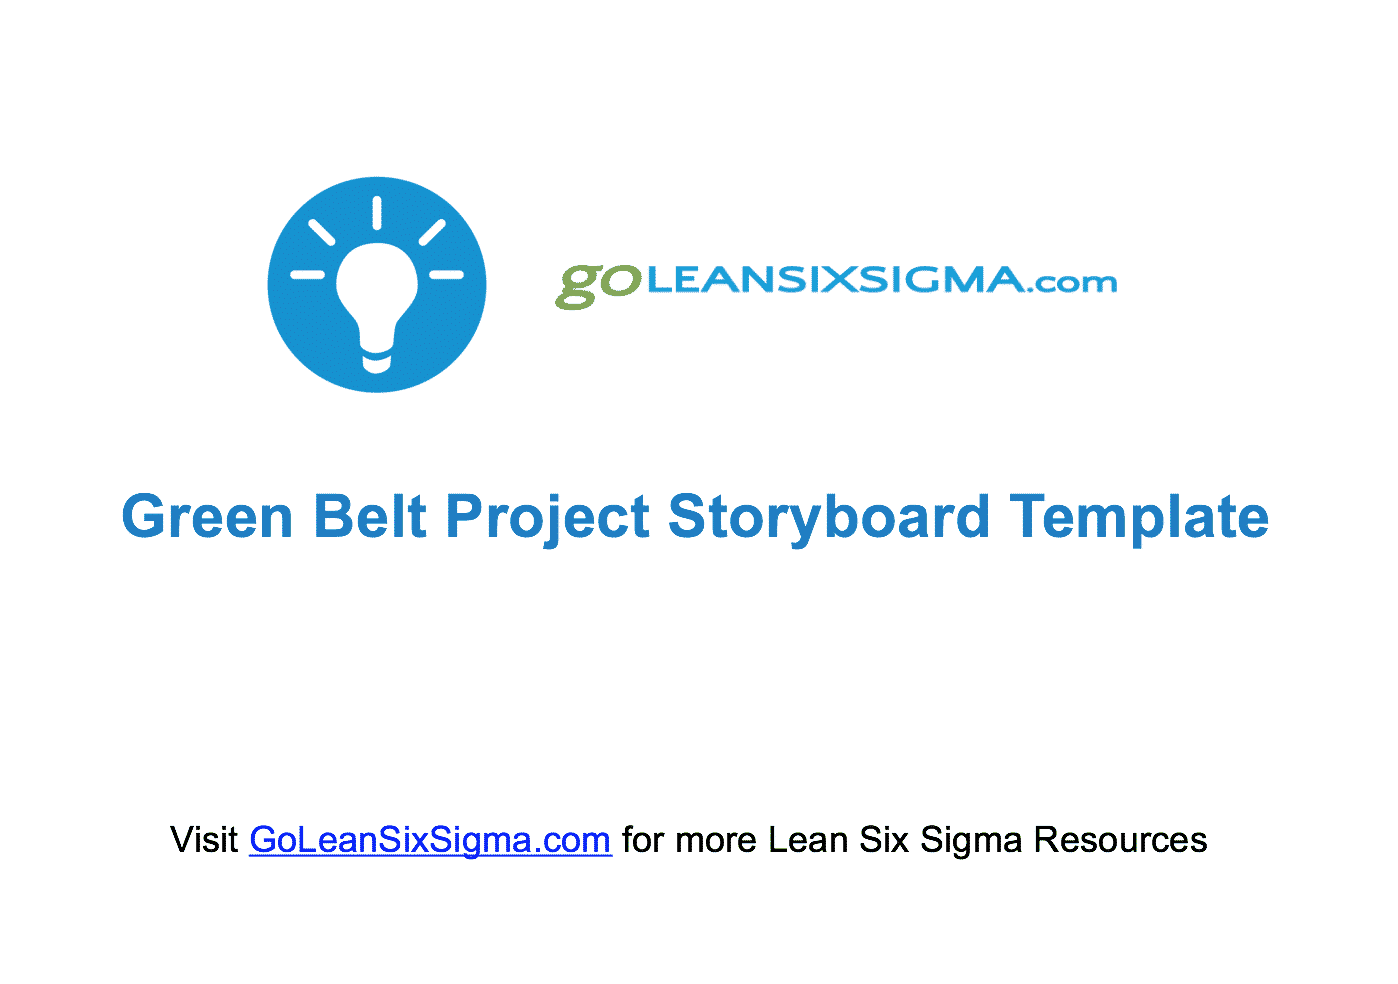 Green Belt Project Storyboard v2.0 - Template